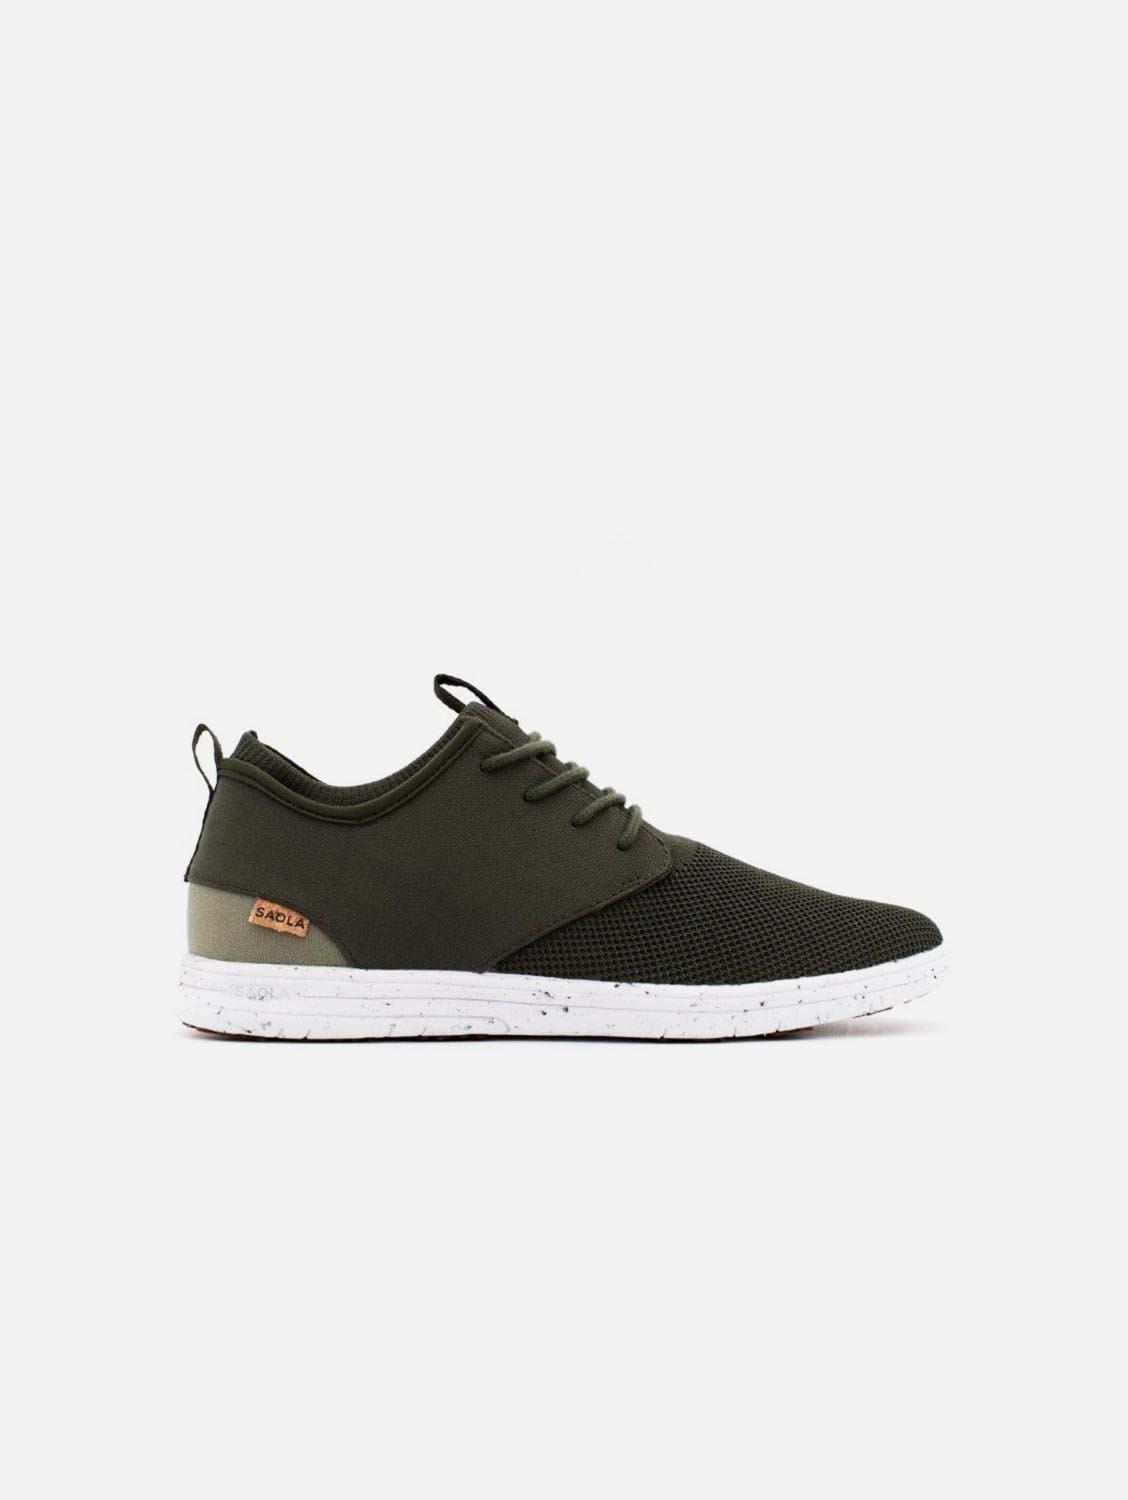 Semnoz Women's Vegan Trainers | Olive Night